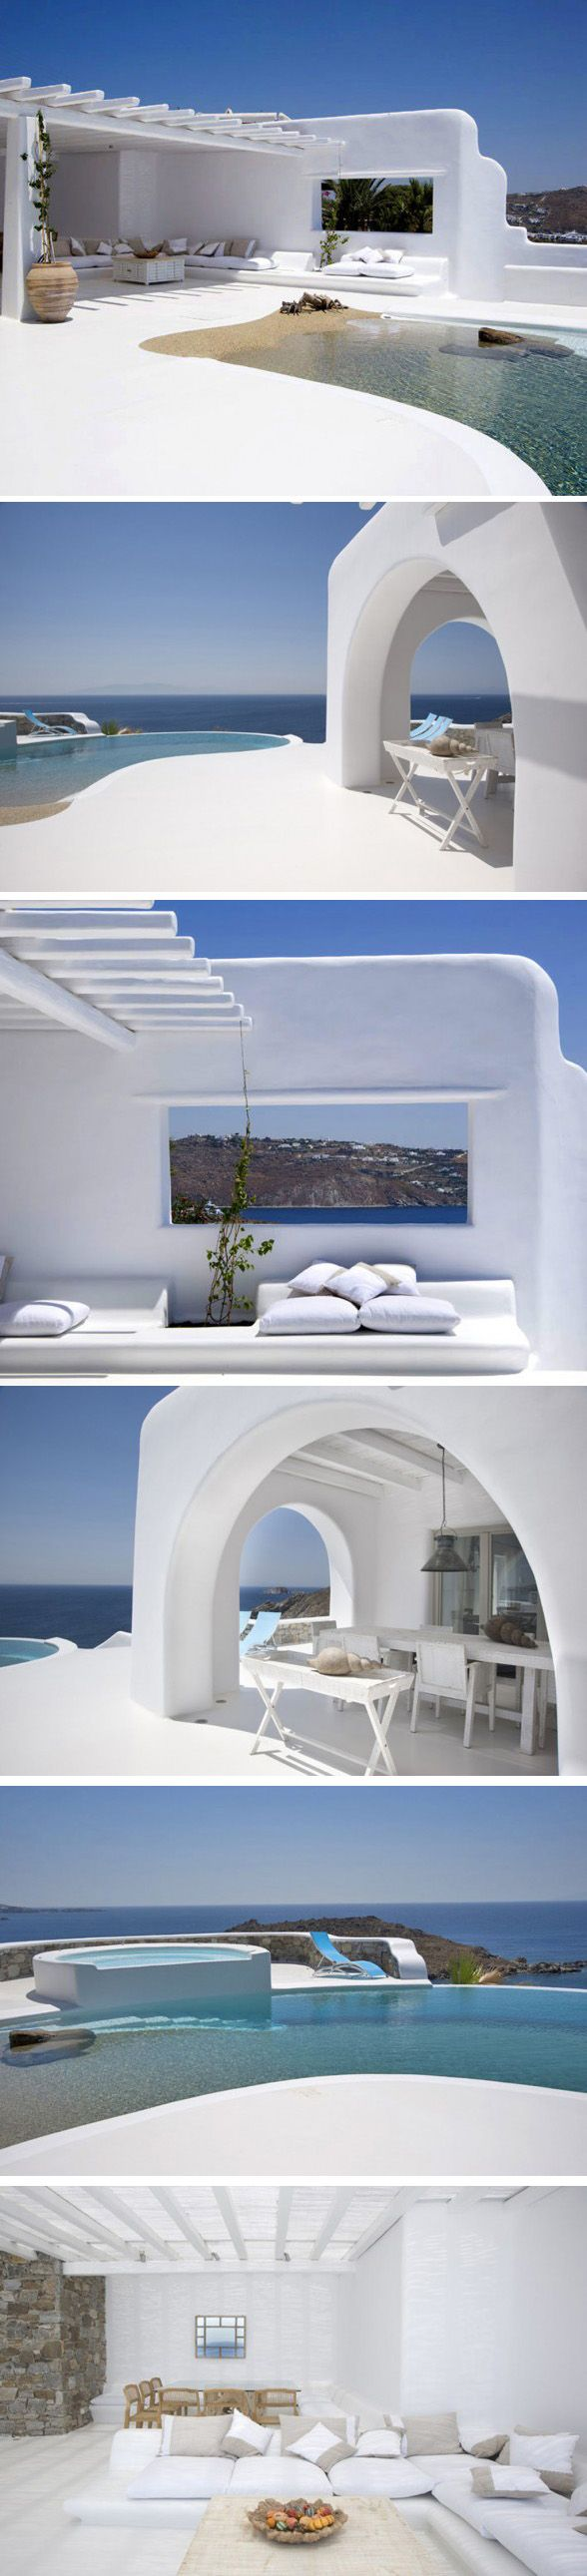 Mykonos Villa, Greece #Mykonos #Greece #www.Mykonos-Dreams.com                                                                                                                                                                                 Más